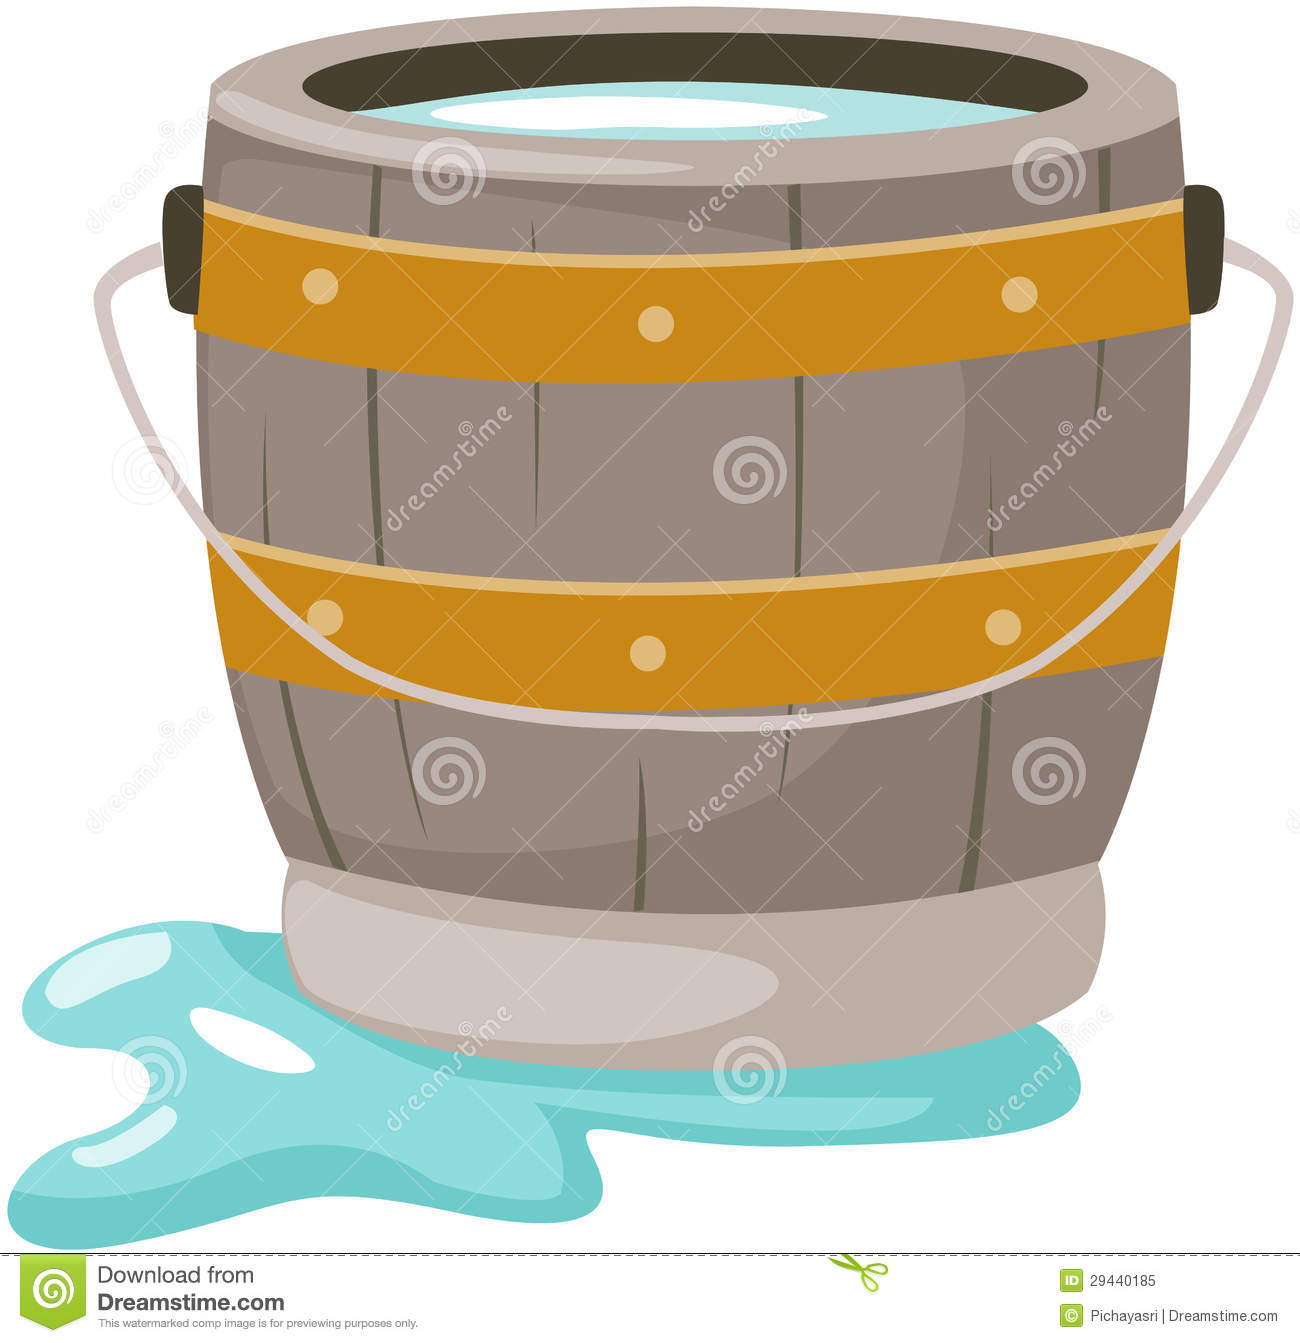 Bucket clipart animated. Tub of water